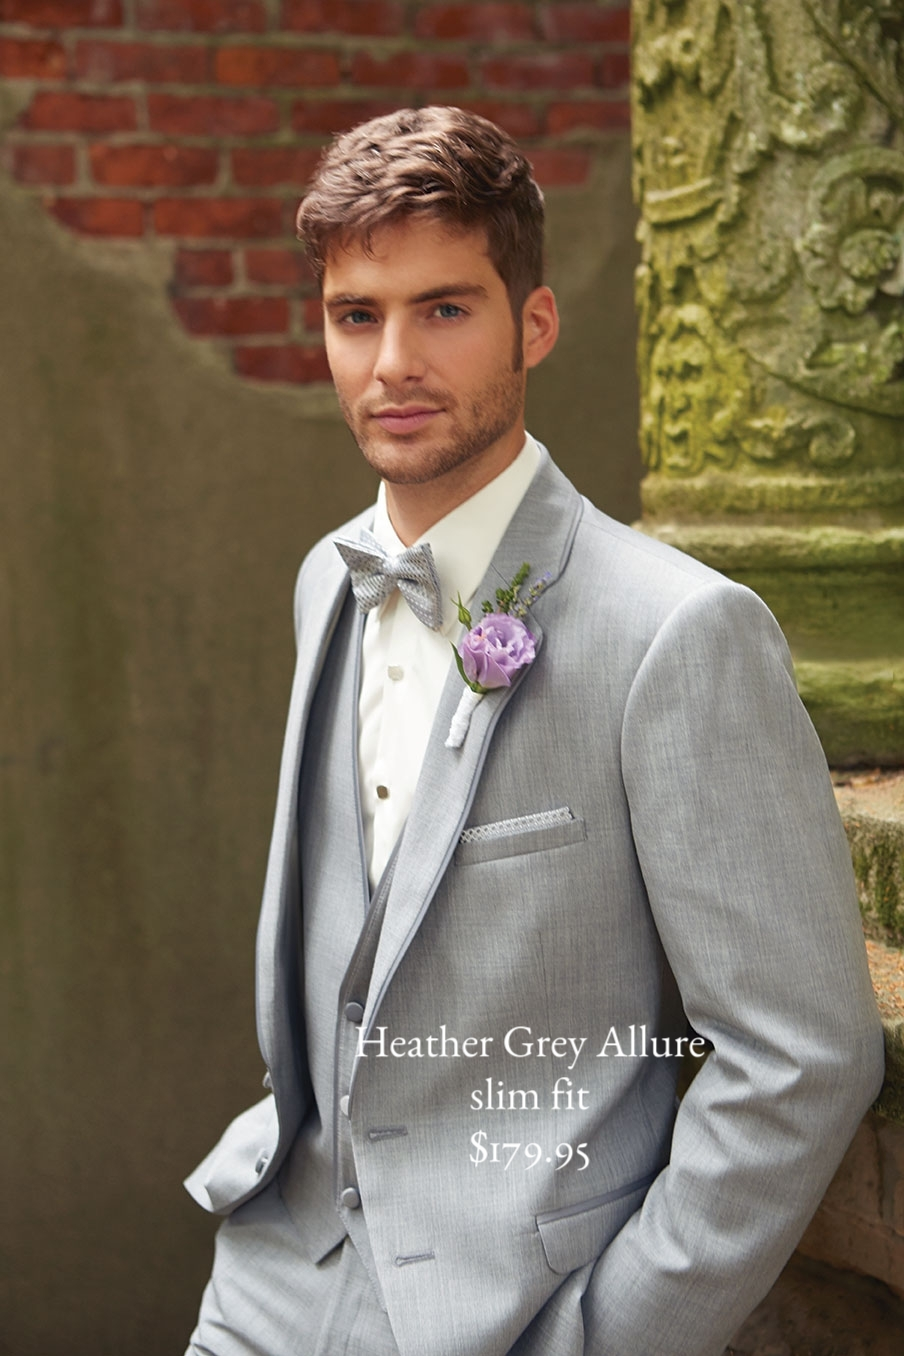 heather grey allure .jpg